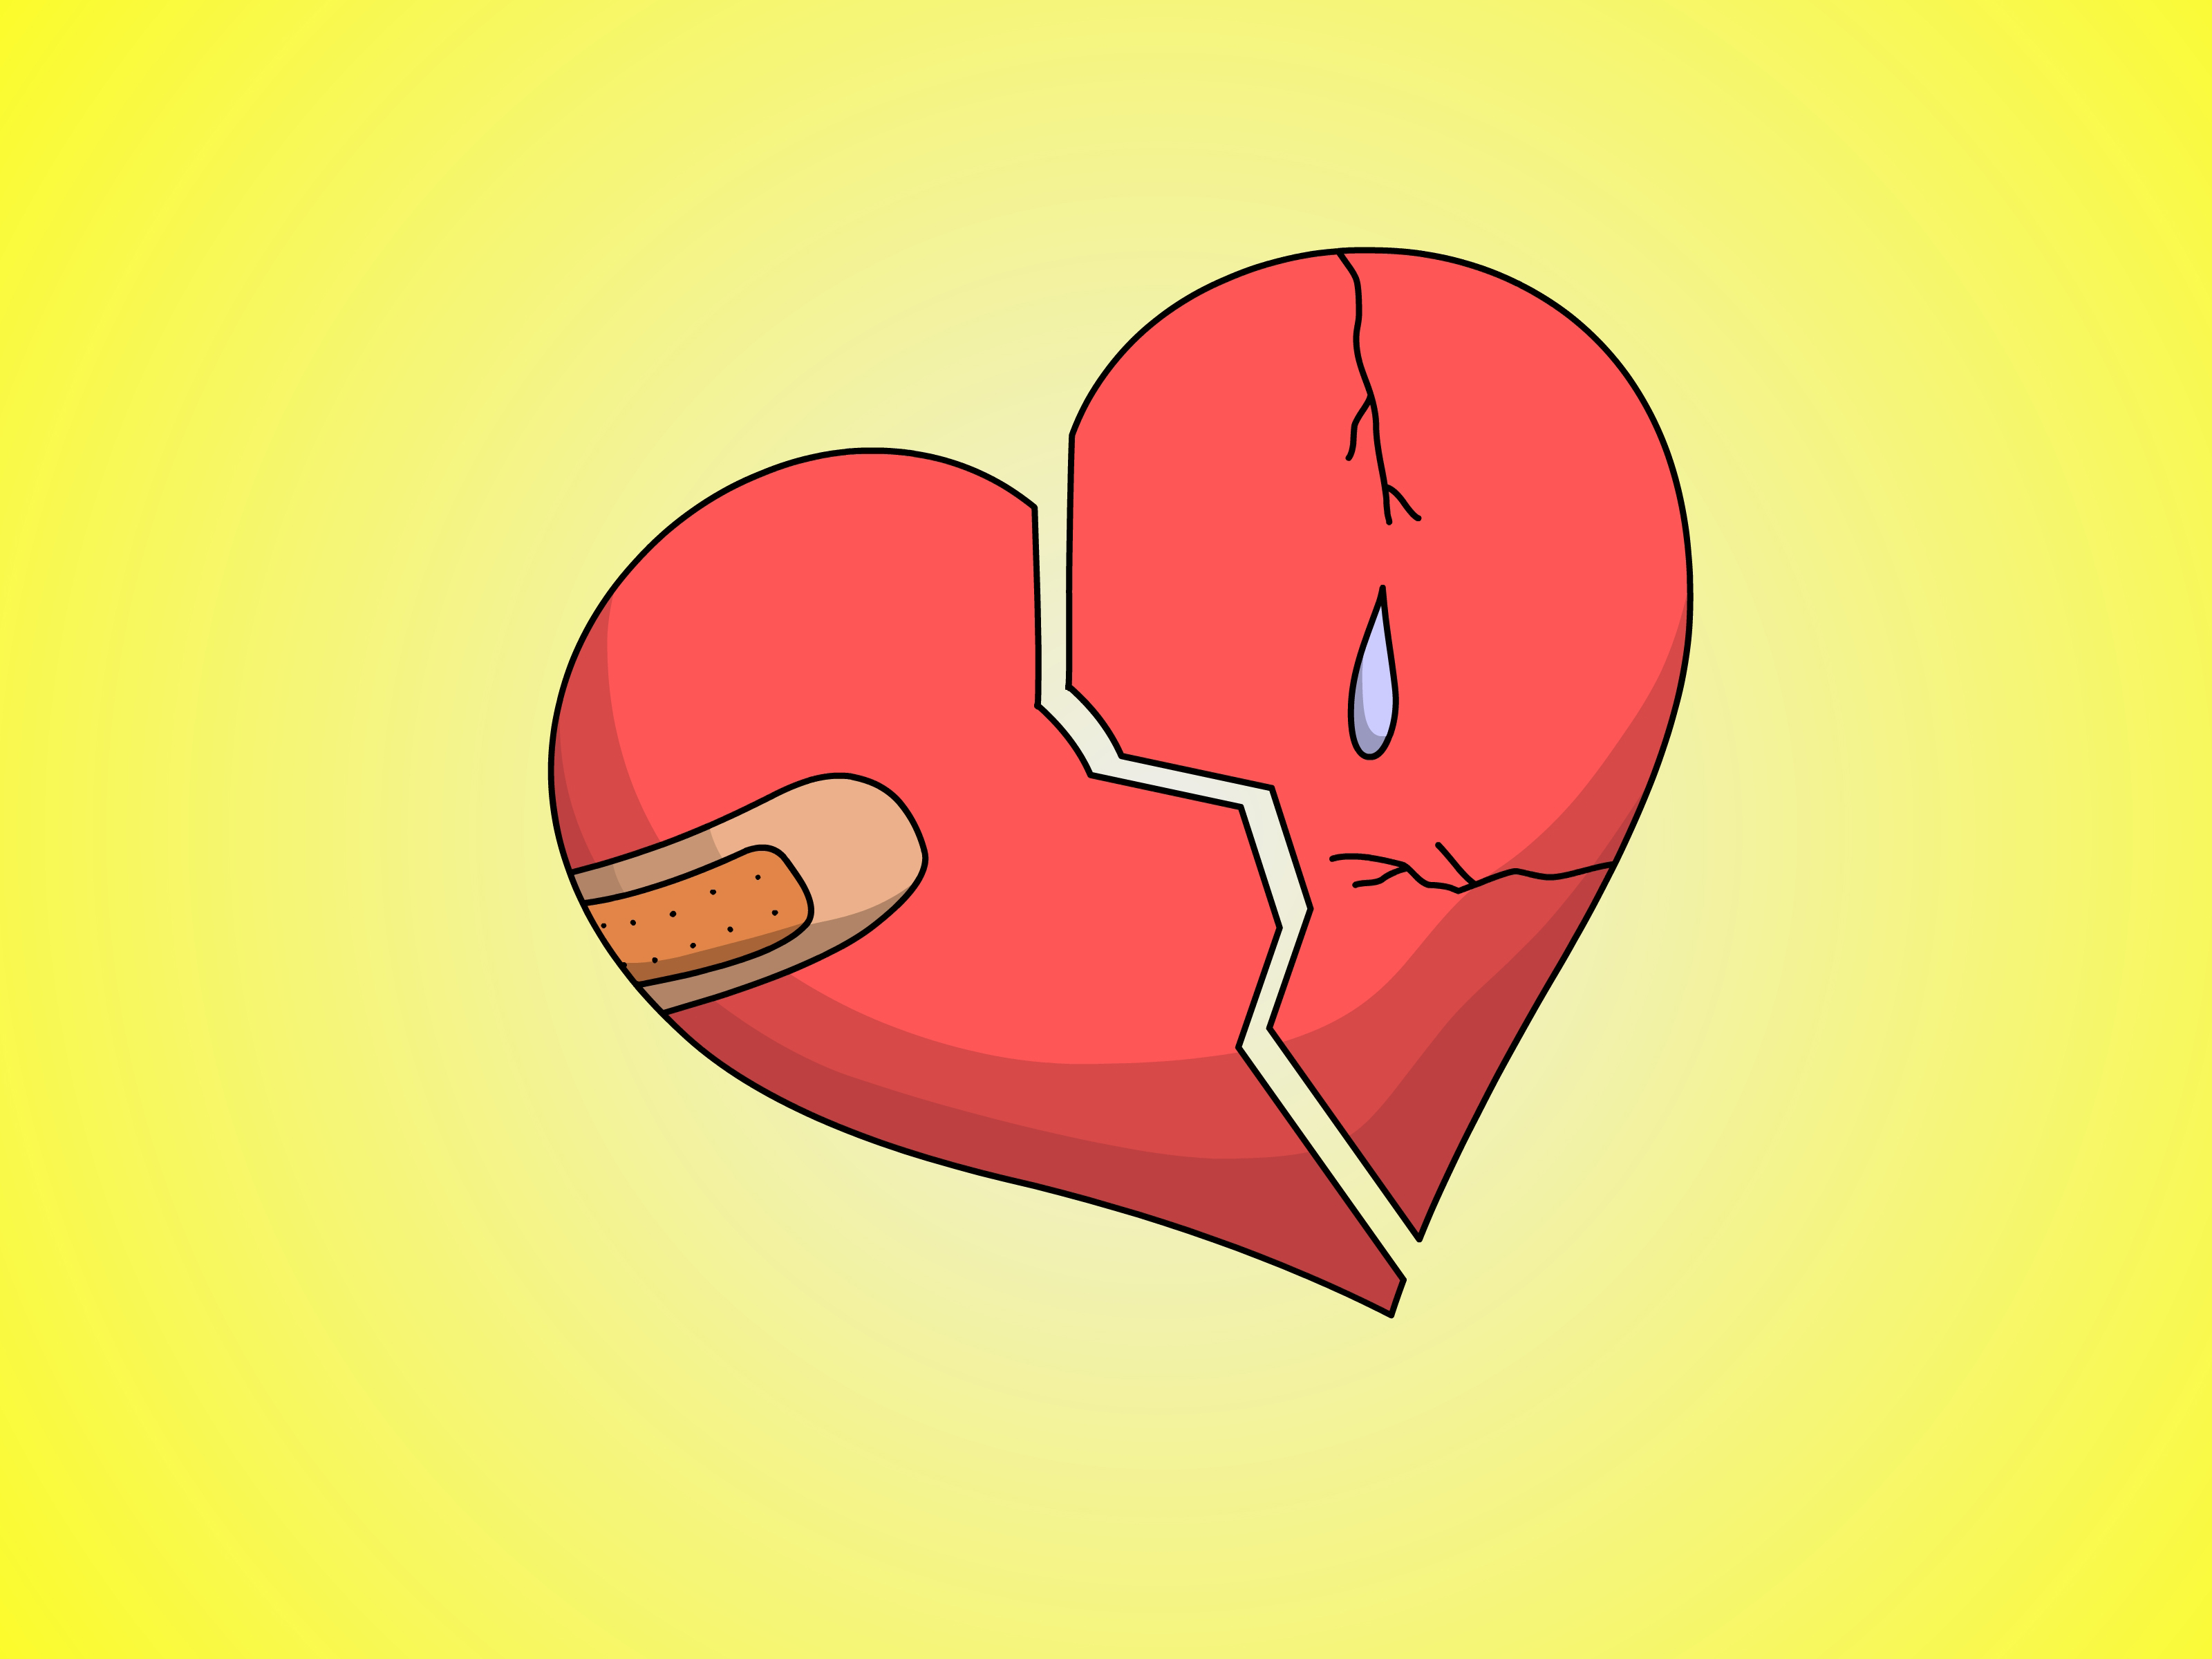 Amazing Wallpaper Love Emoji - Draw-a-Broken-Heart-Step-6  Collection_194999.jpg